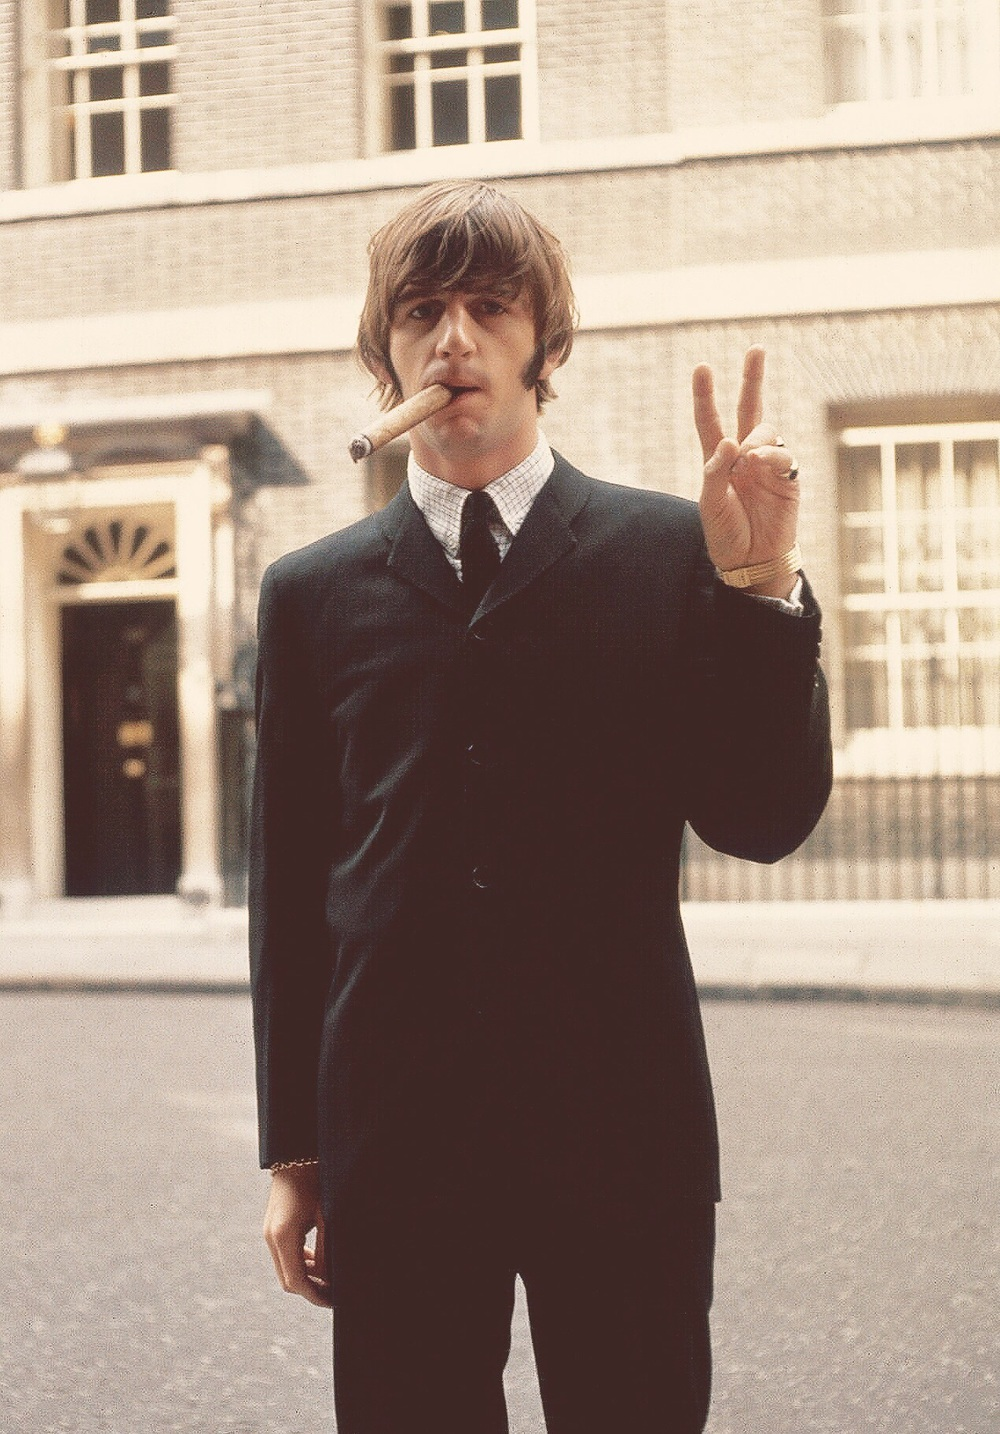 Ringo Starr outside 10 Downing Street, London, 1965.